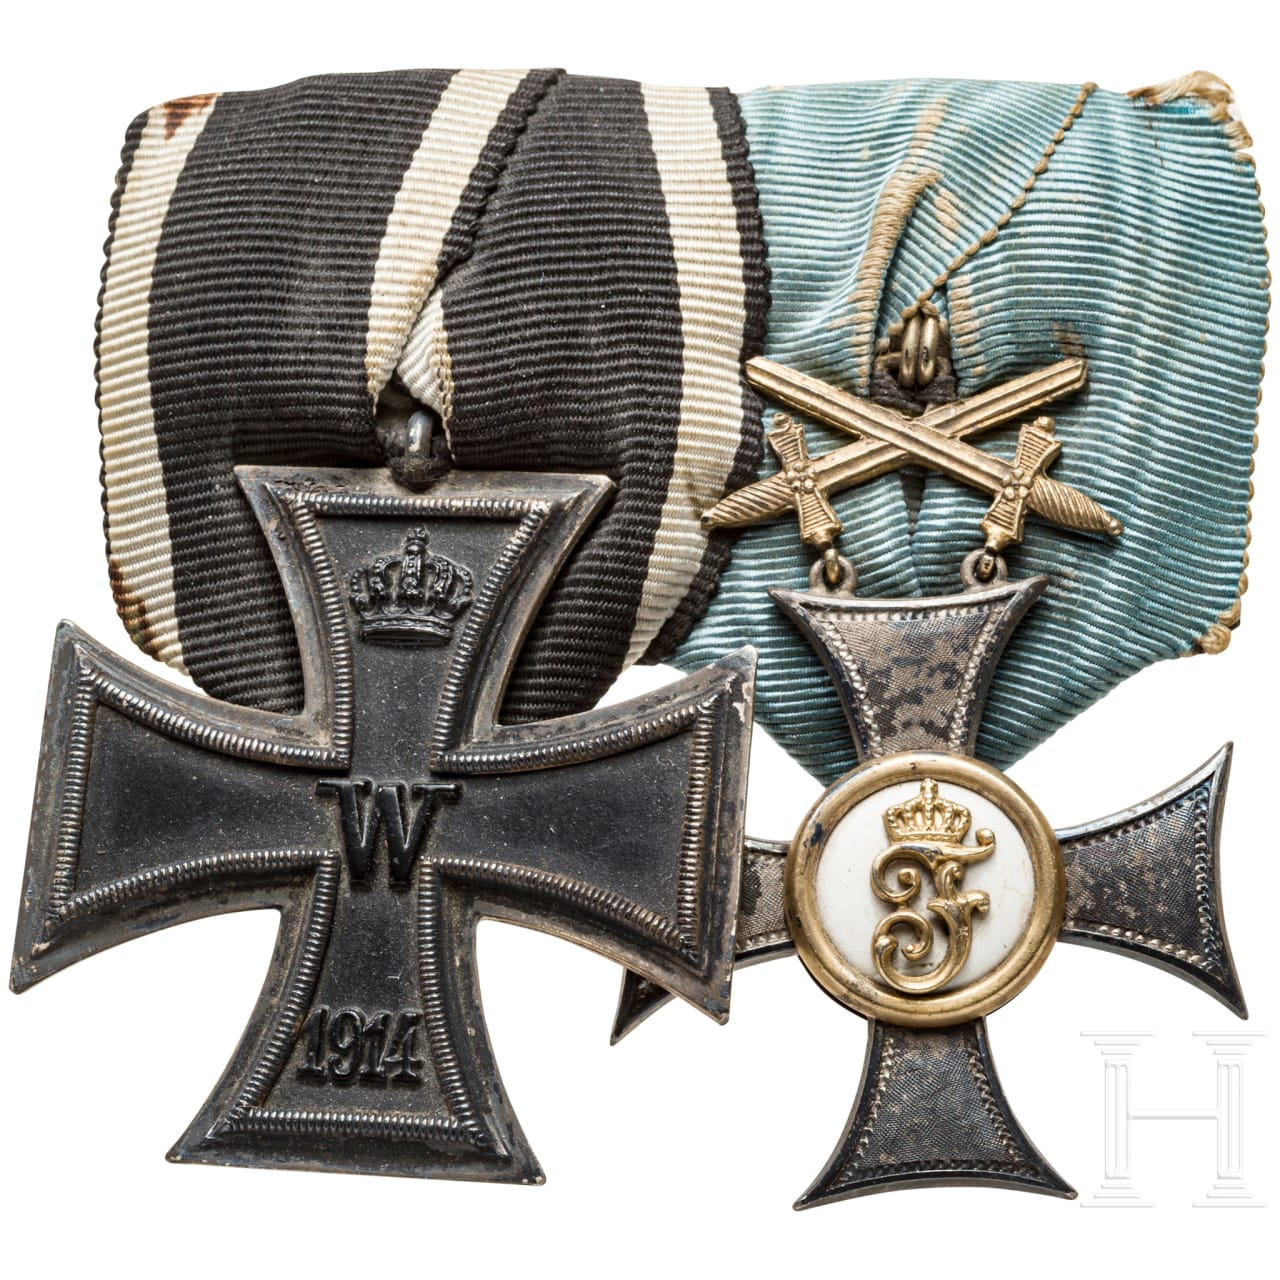 Two medal bars and a document of the Friedrich Order